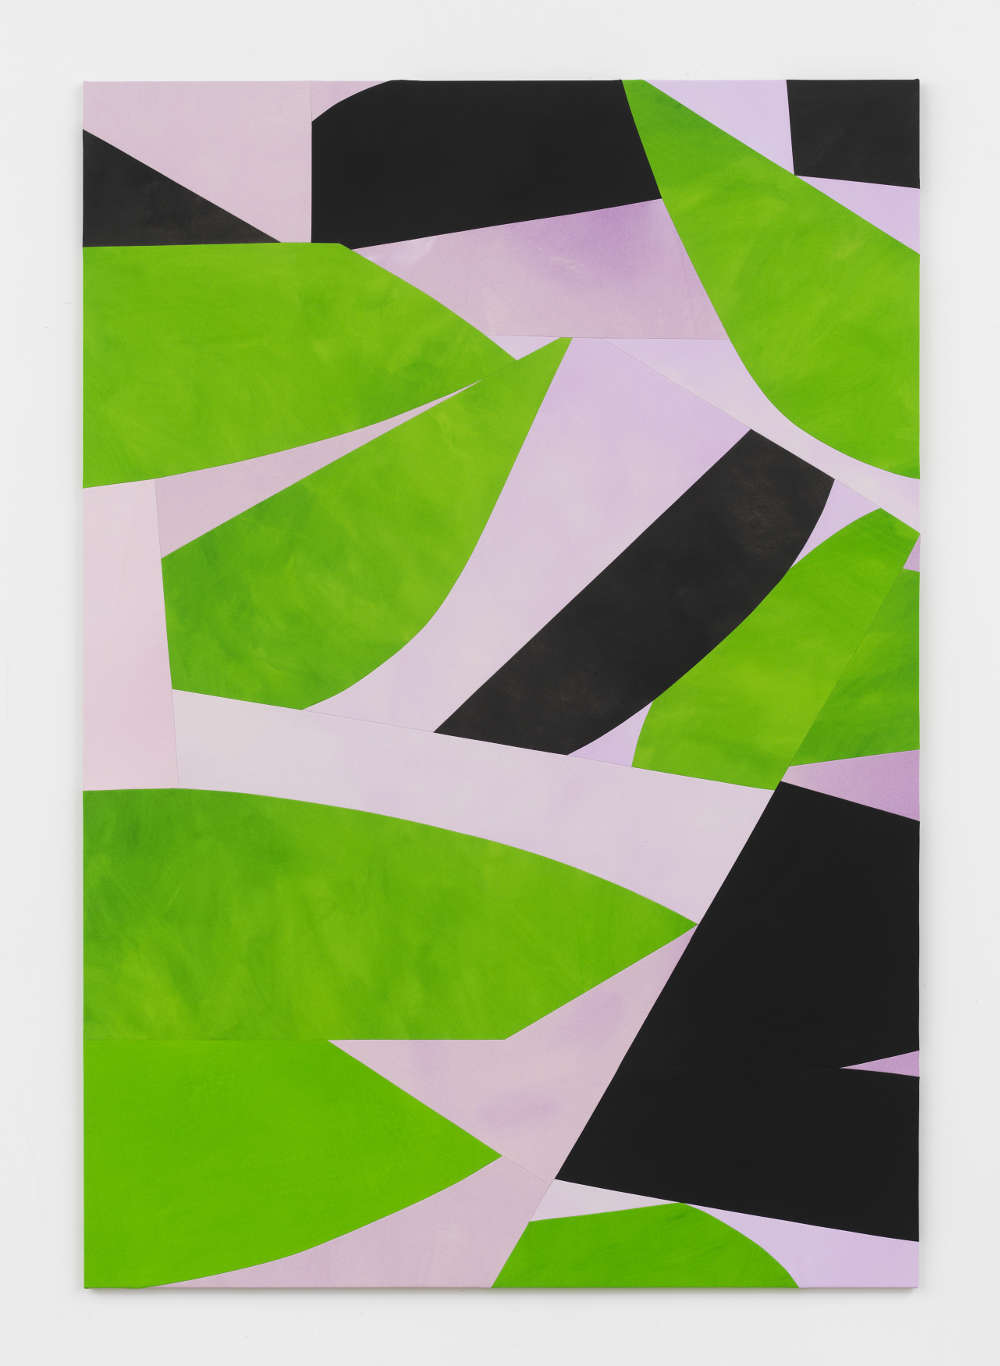 Sarah Crowner, Leaves and Shadows, Lilac Background, 2019. Acrylic on canvas, sewn 264.2 x 182.9 cm (104 x 72 in.) Courtesy the artist and Simon Lee Gallery